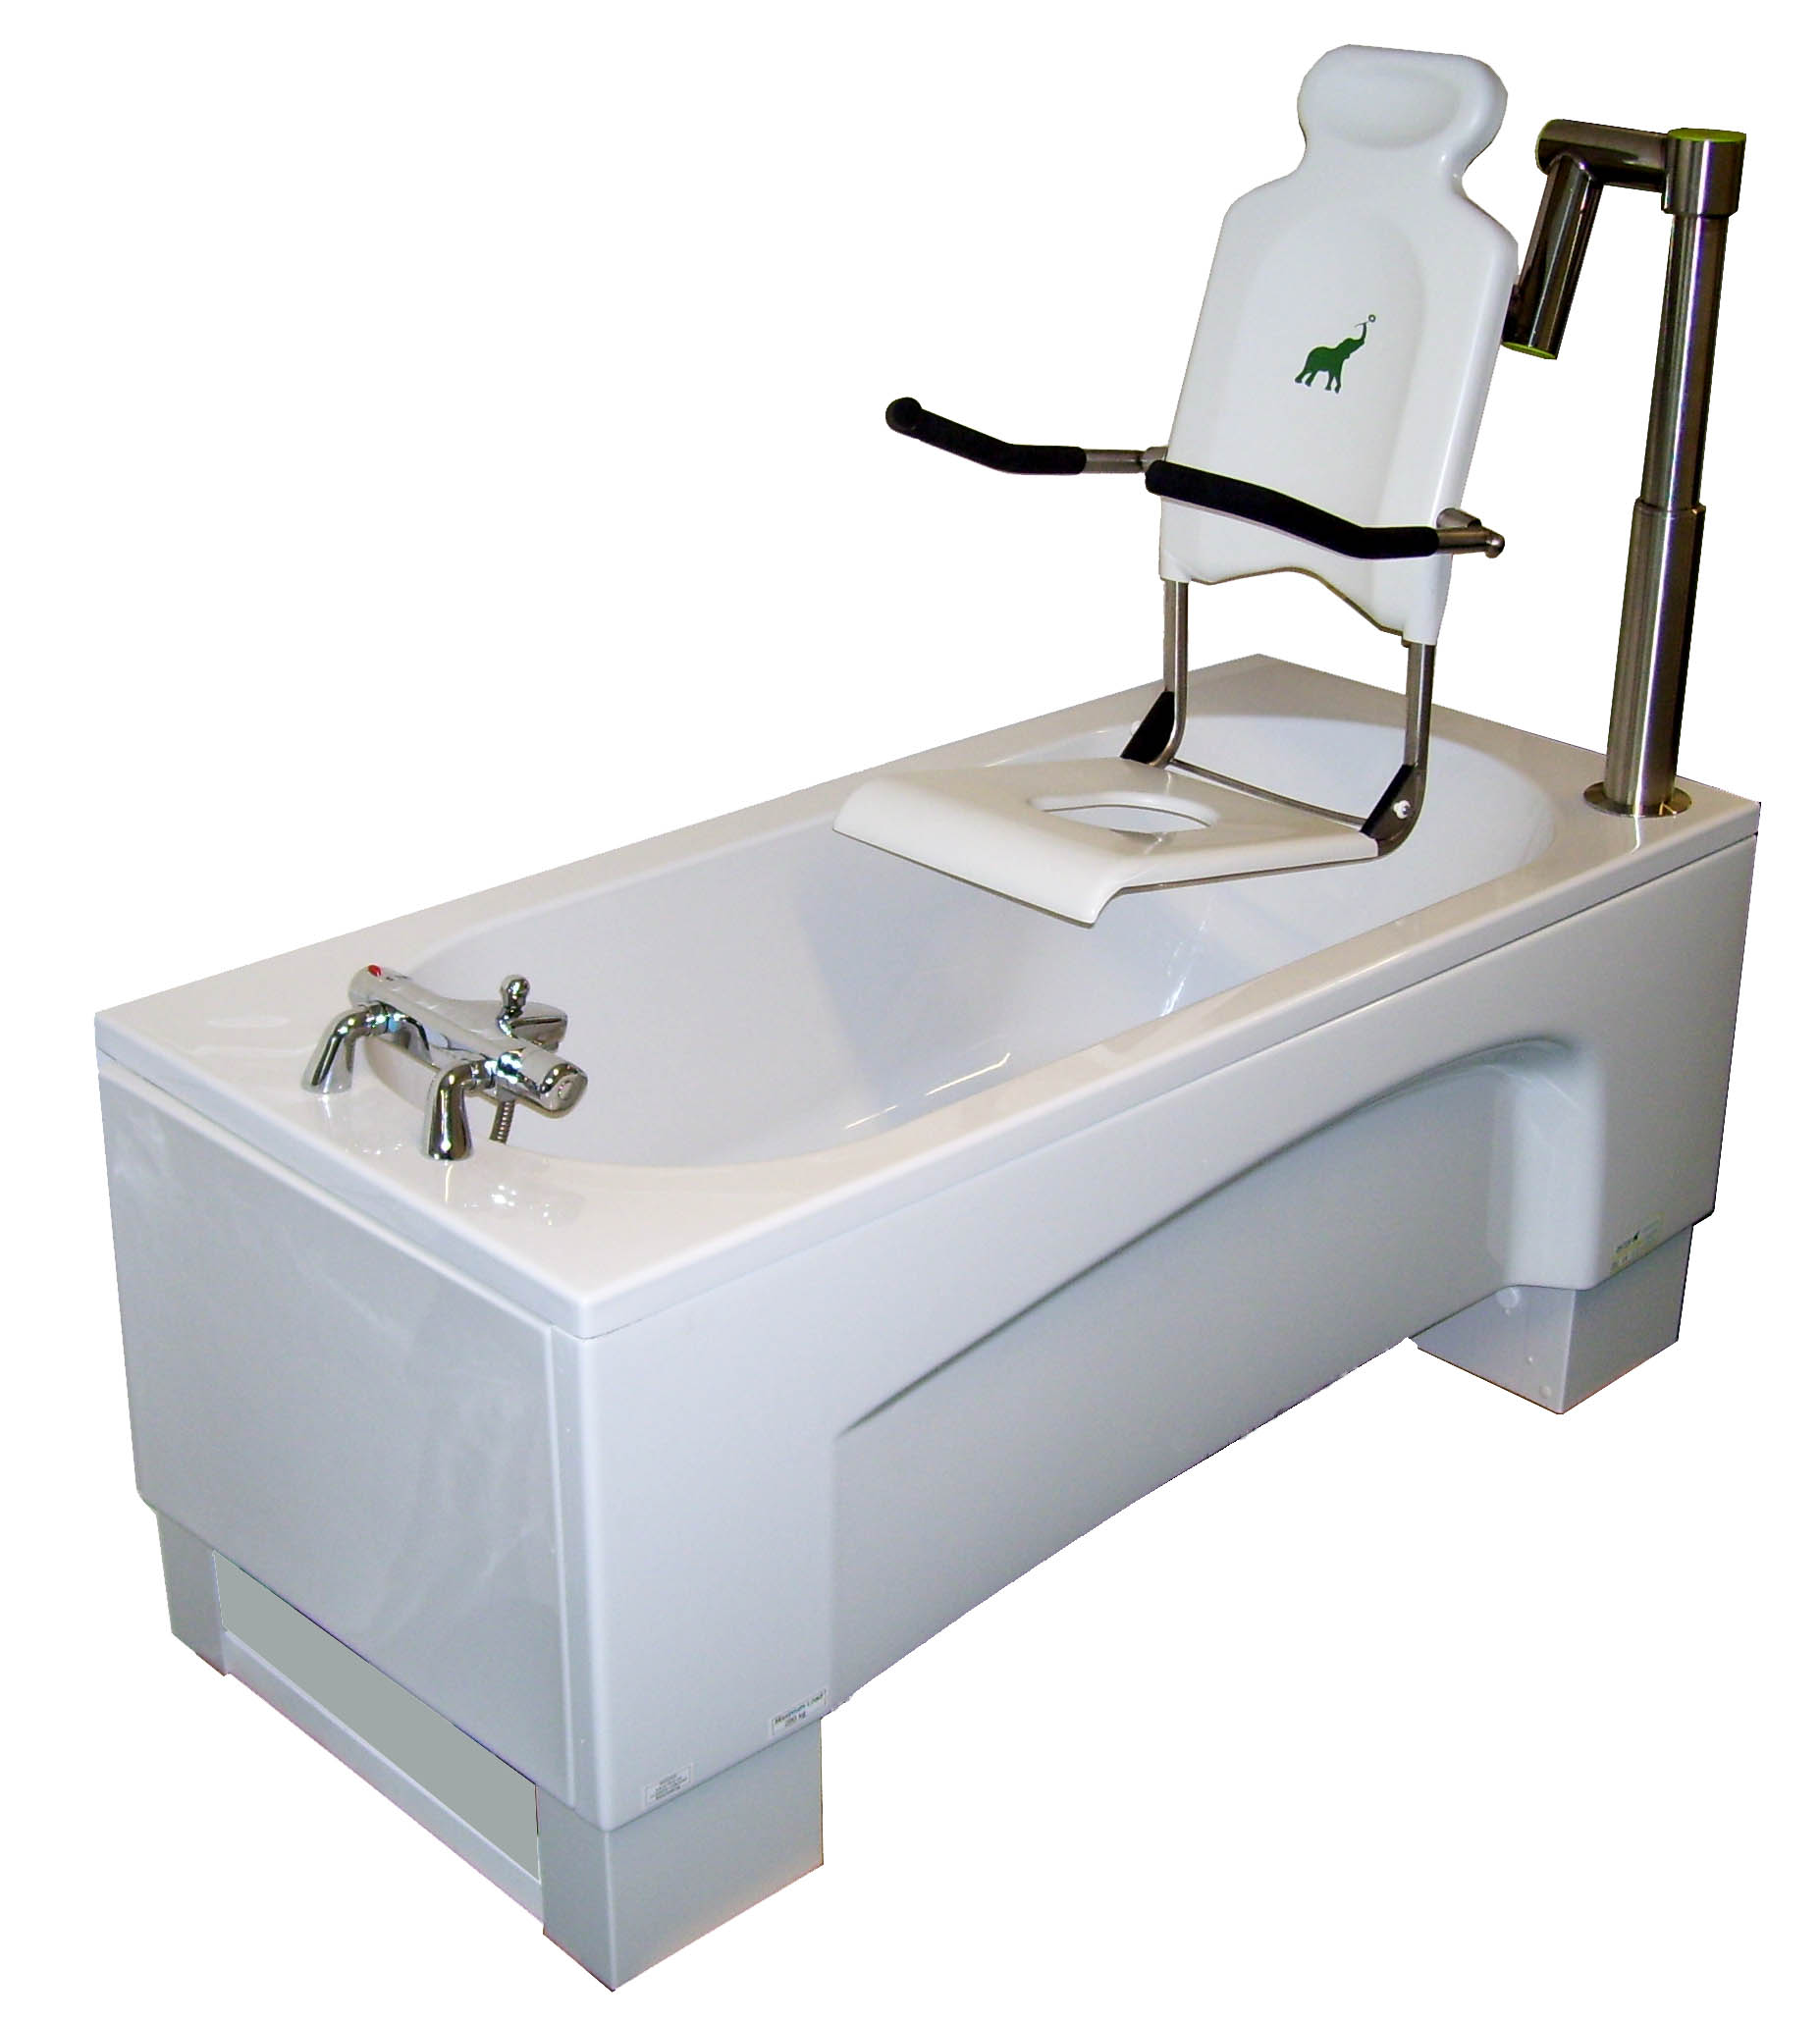 Bath Chair Lift Syncra Standard Modular Bathing System Living Made Easy